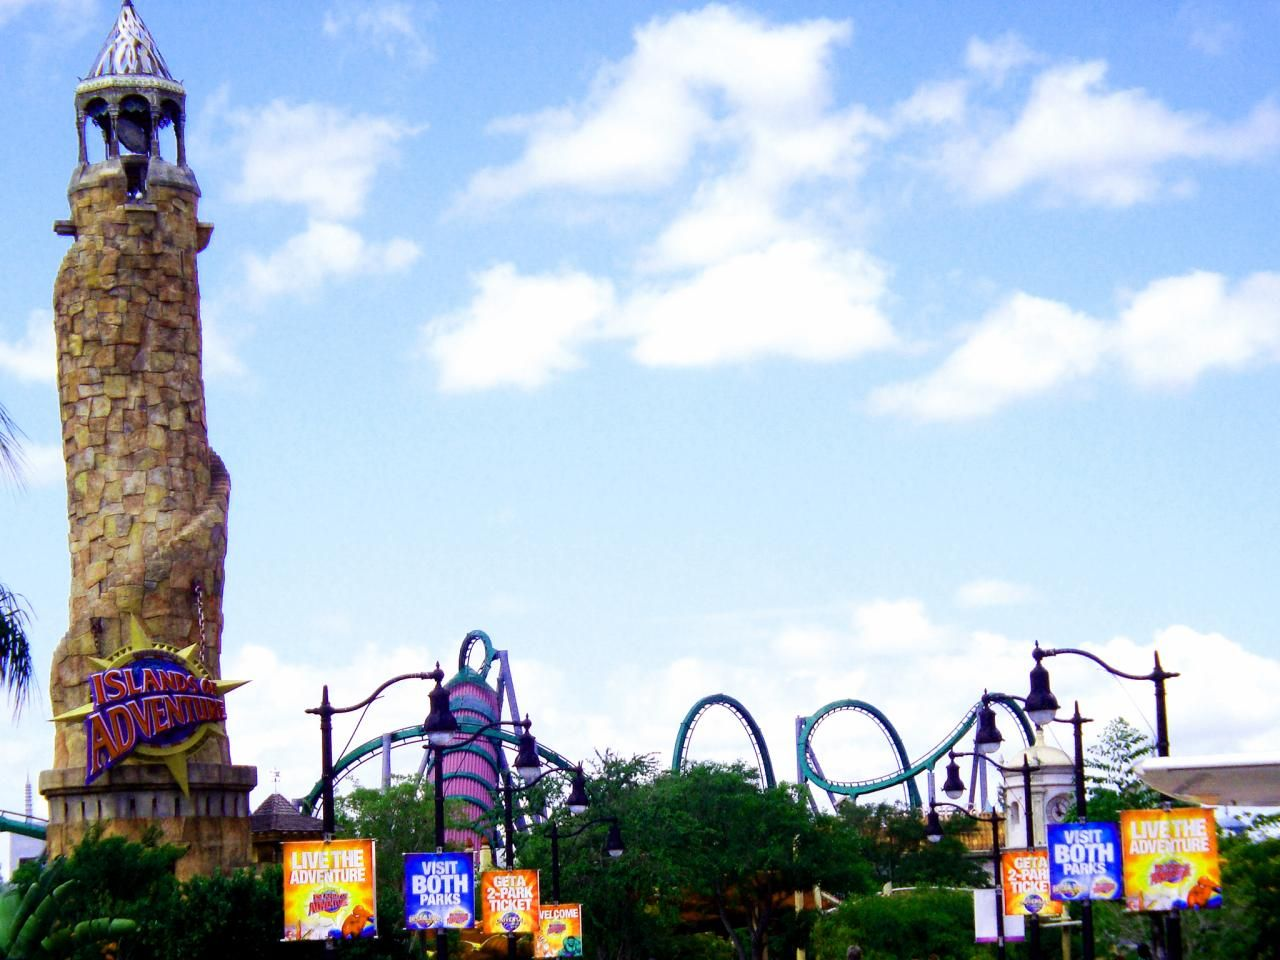 Universal's Islands of Adventure is the go-to place for those with a need for speed. Thrill seekers will especially enjoy Dr. Doom's Fearfall and the Incredible Hulk Coaster.